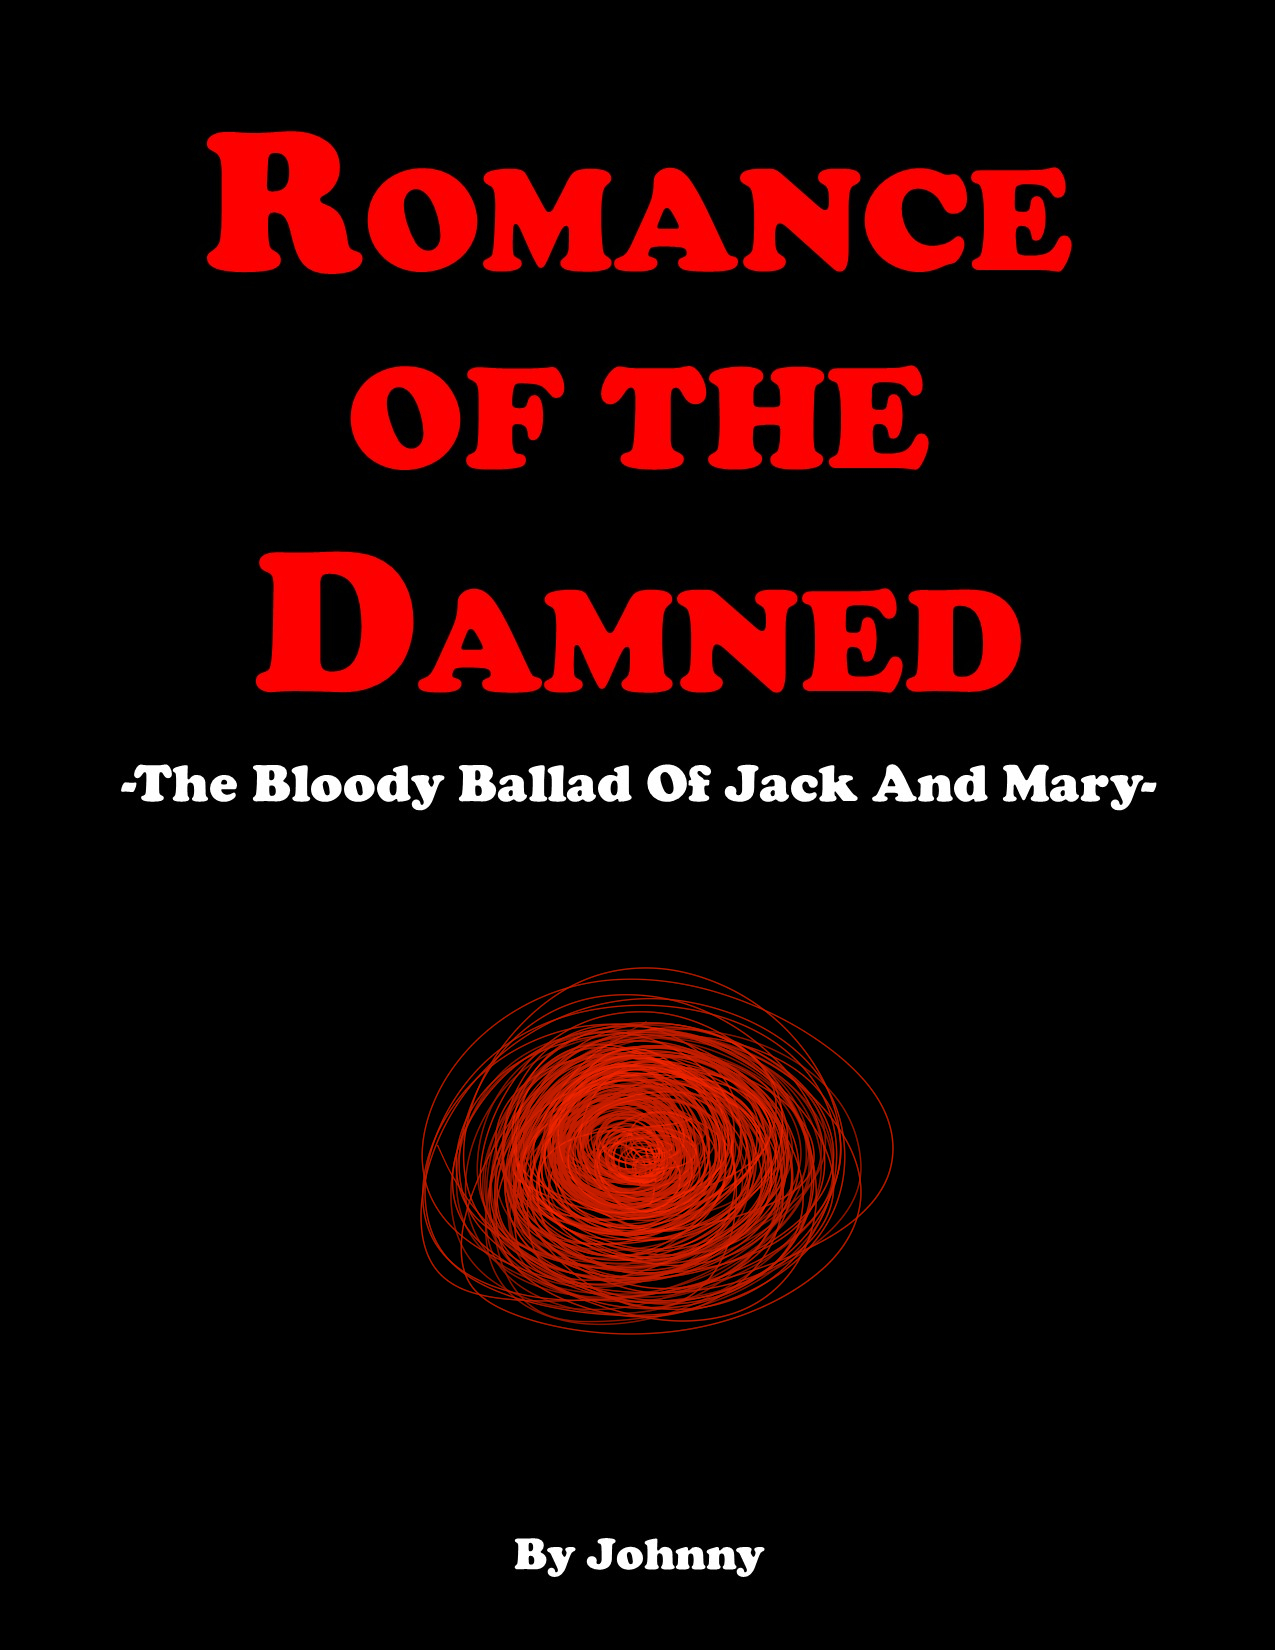 romance-of-the-damned-cover-1